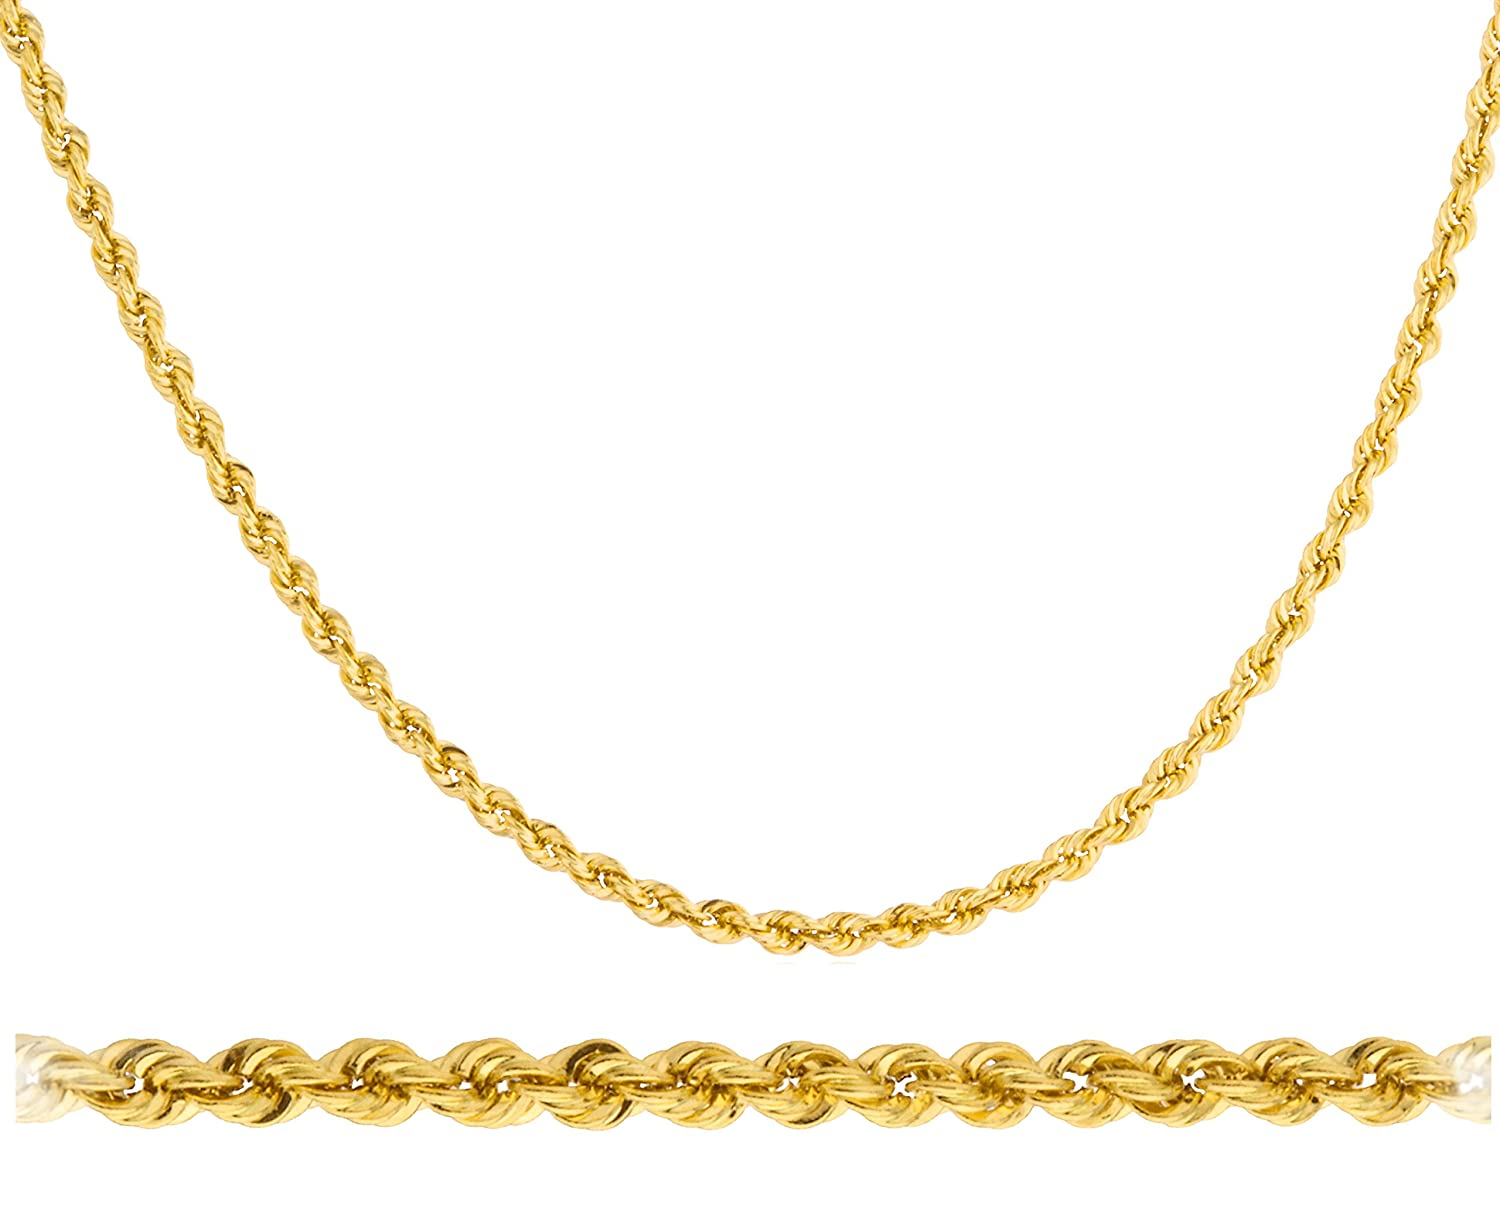 200359725c7ef Amazon.com: JOTW 14k Yellow Gold 2mm Rope Chain Necklace - 16